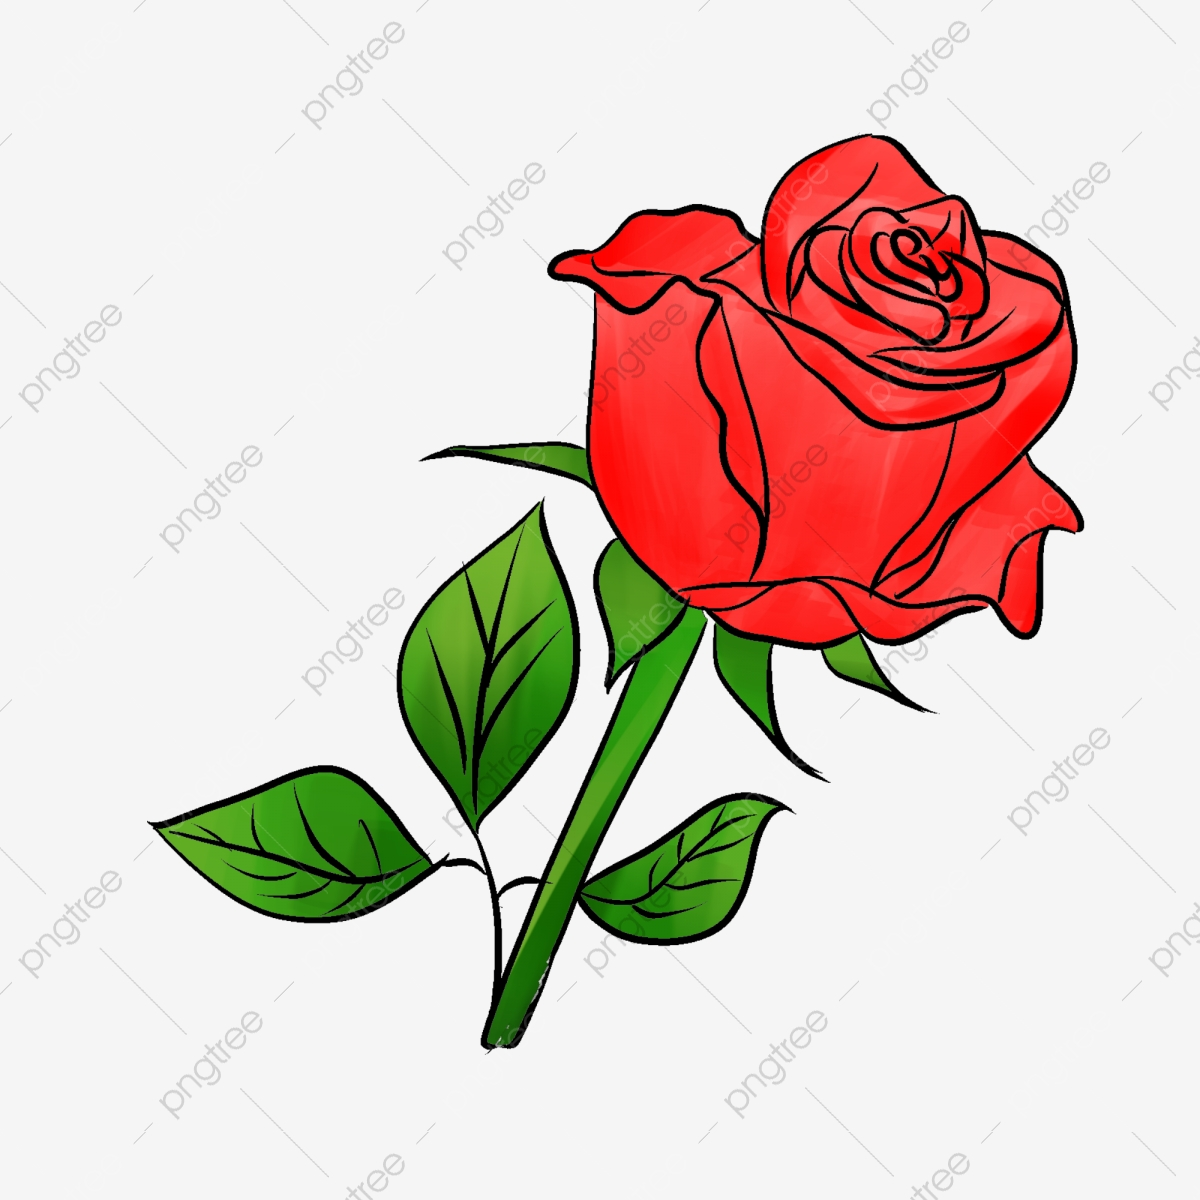 Clipart roses basic. Rose red simple flowers